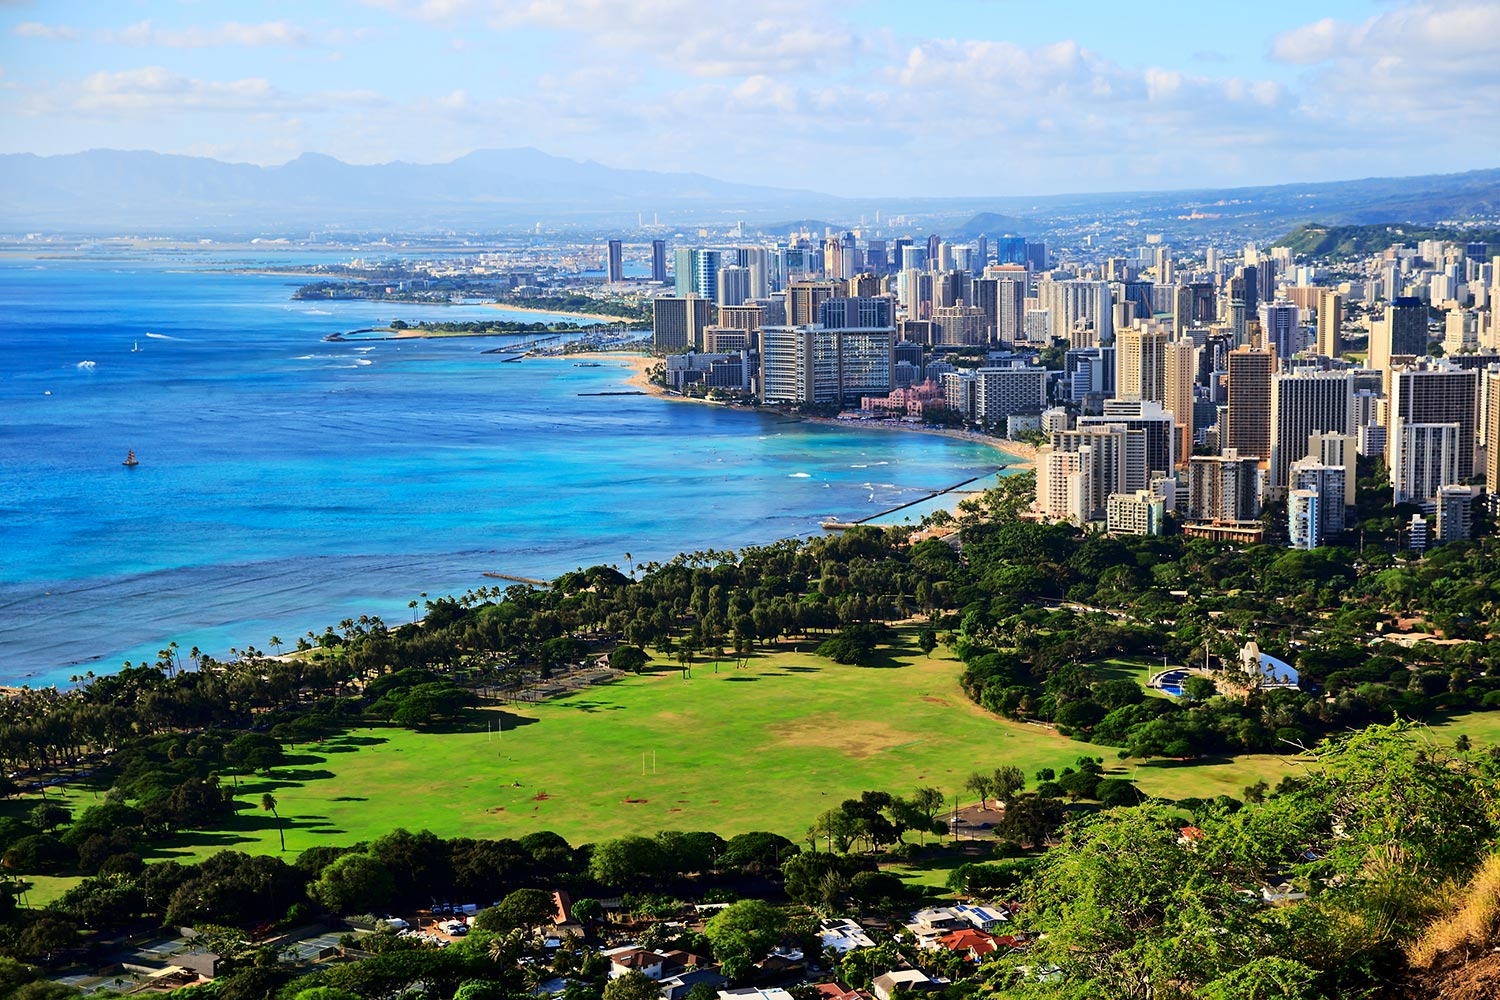 Curving coastline of Honolulu lining an urban landscape and green field